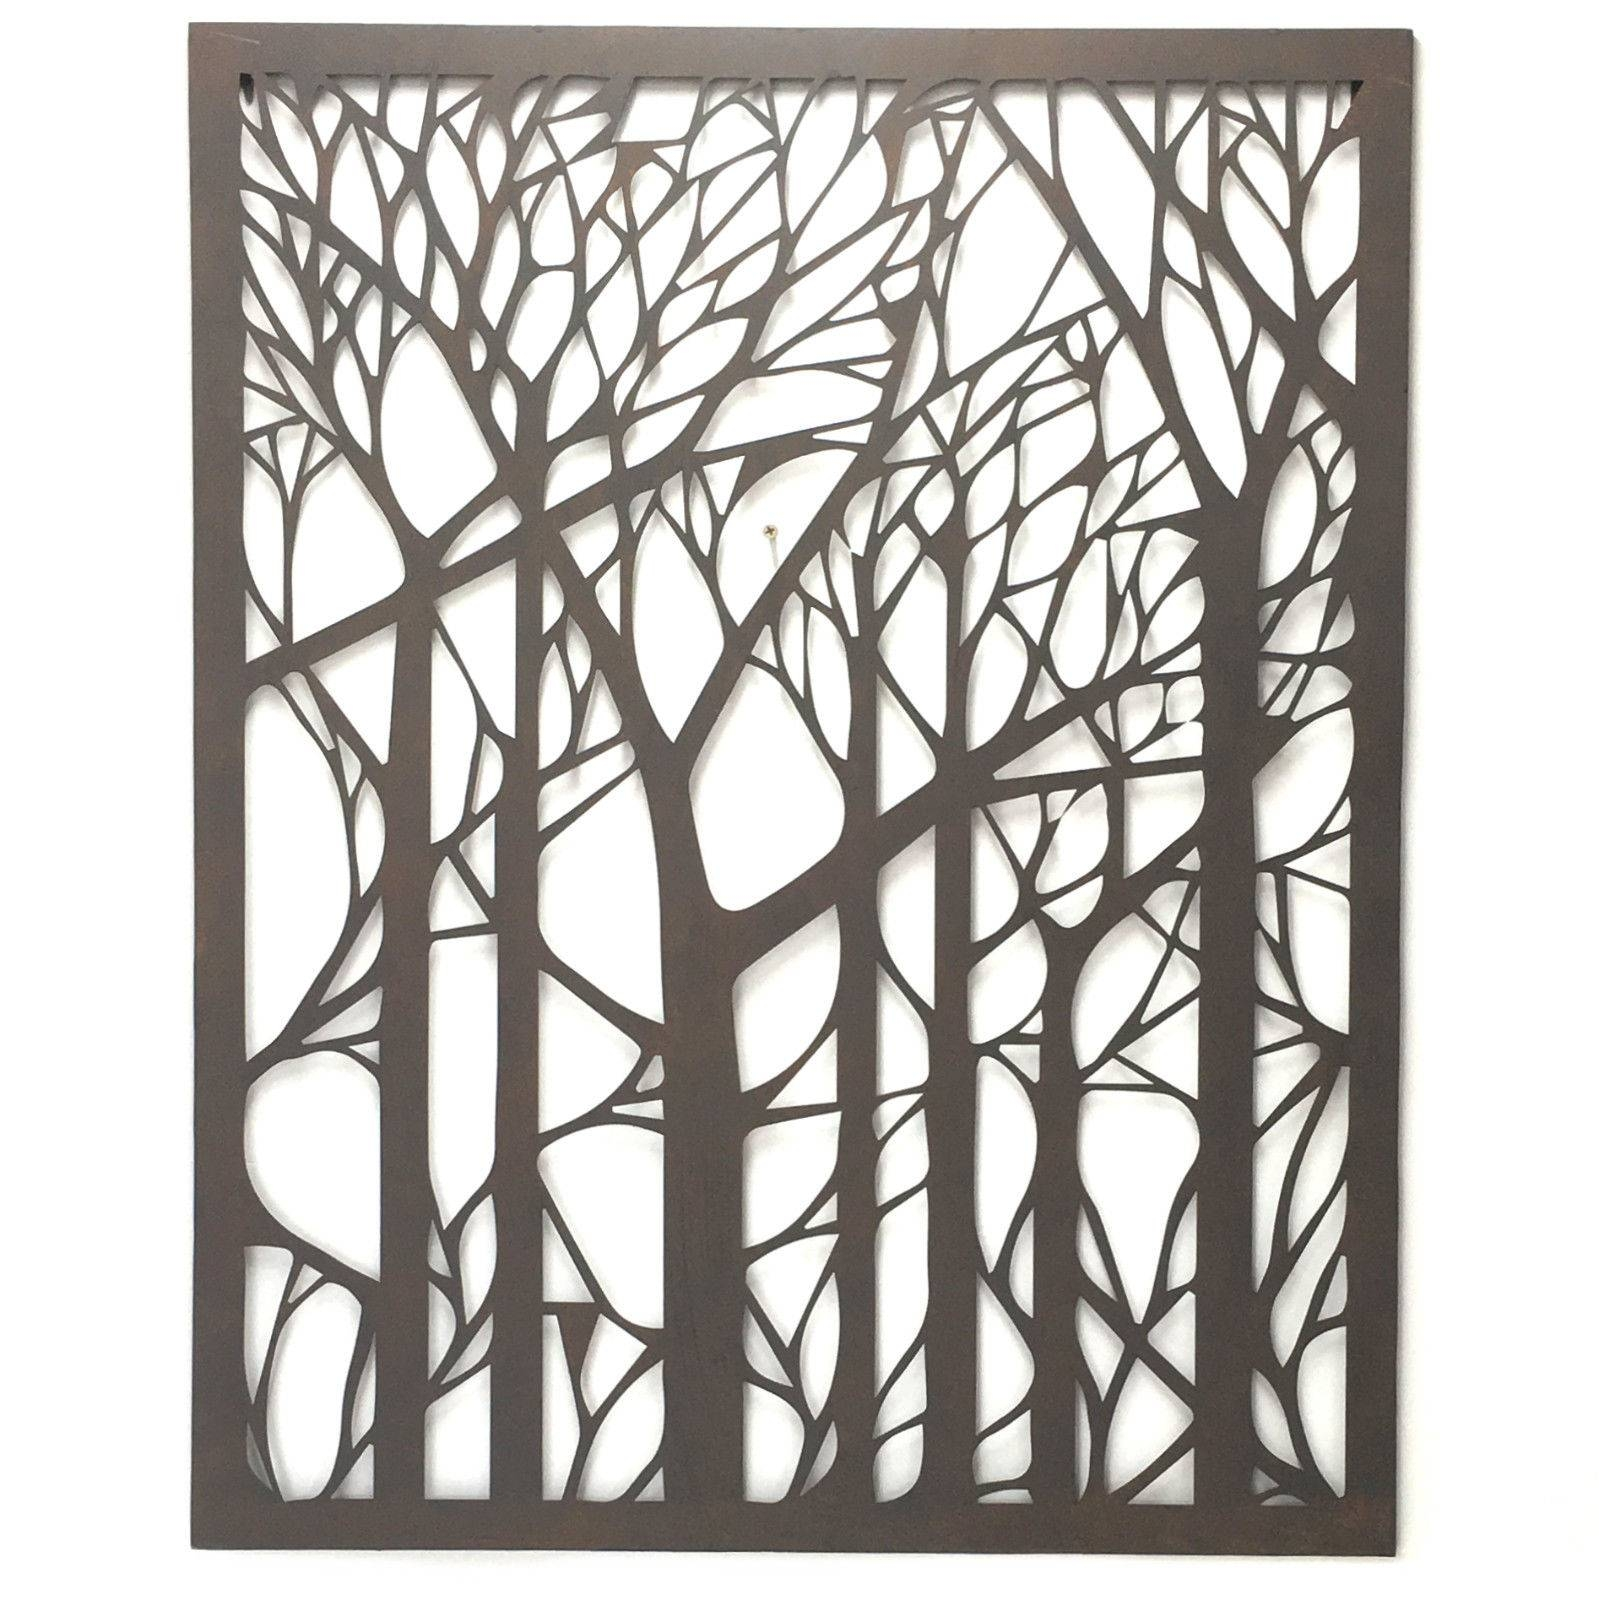 Wall Art Designs: Outdoor Wall Art Metal Tree Metal Wall Art For 2017 Metal Wall Art Branches (View 19 of 20)